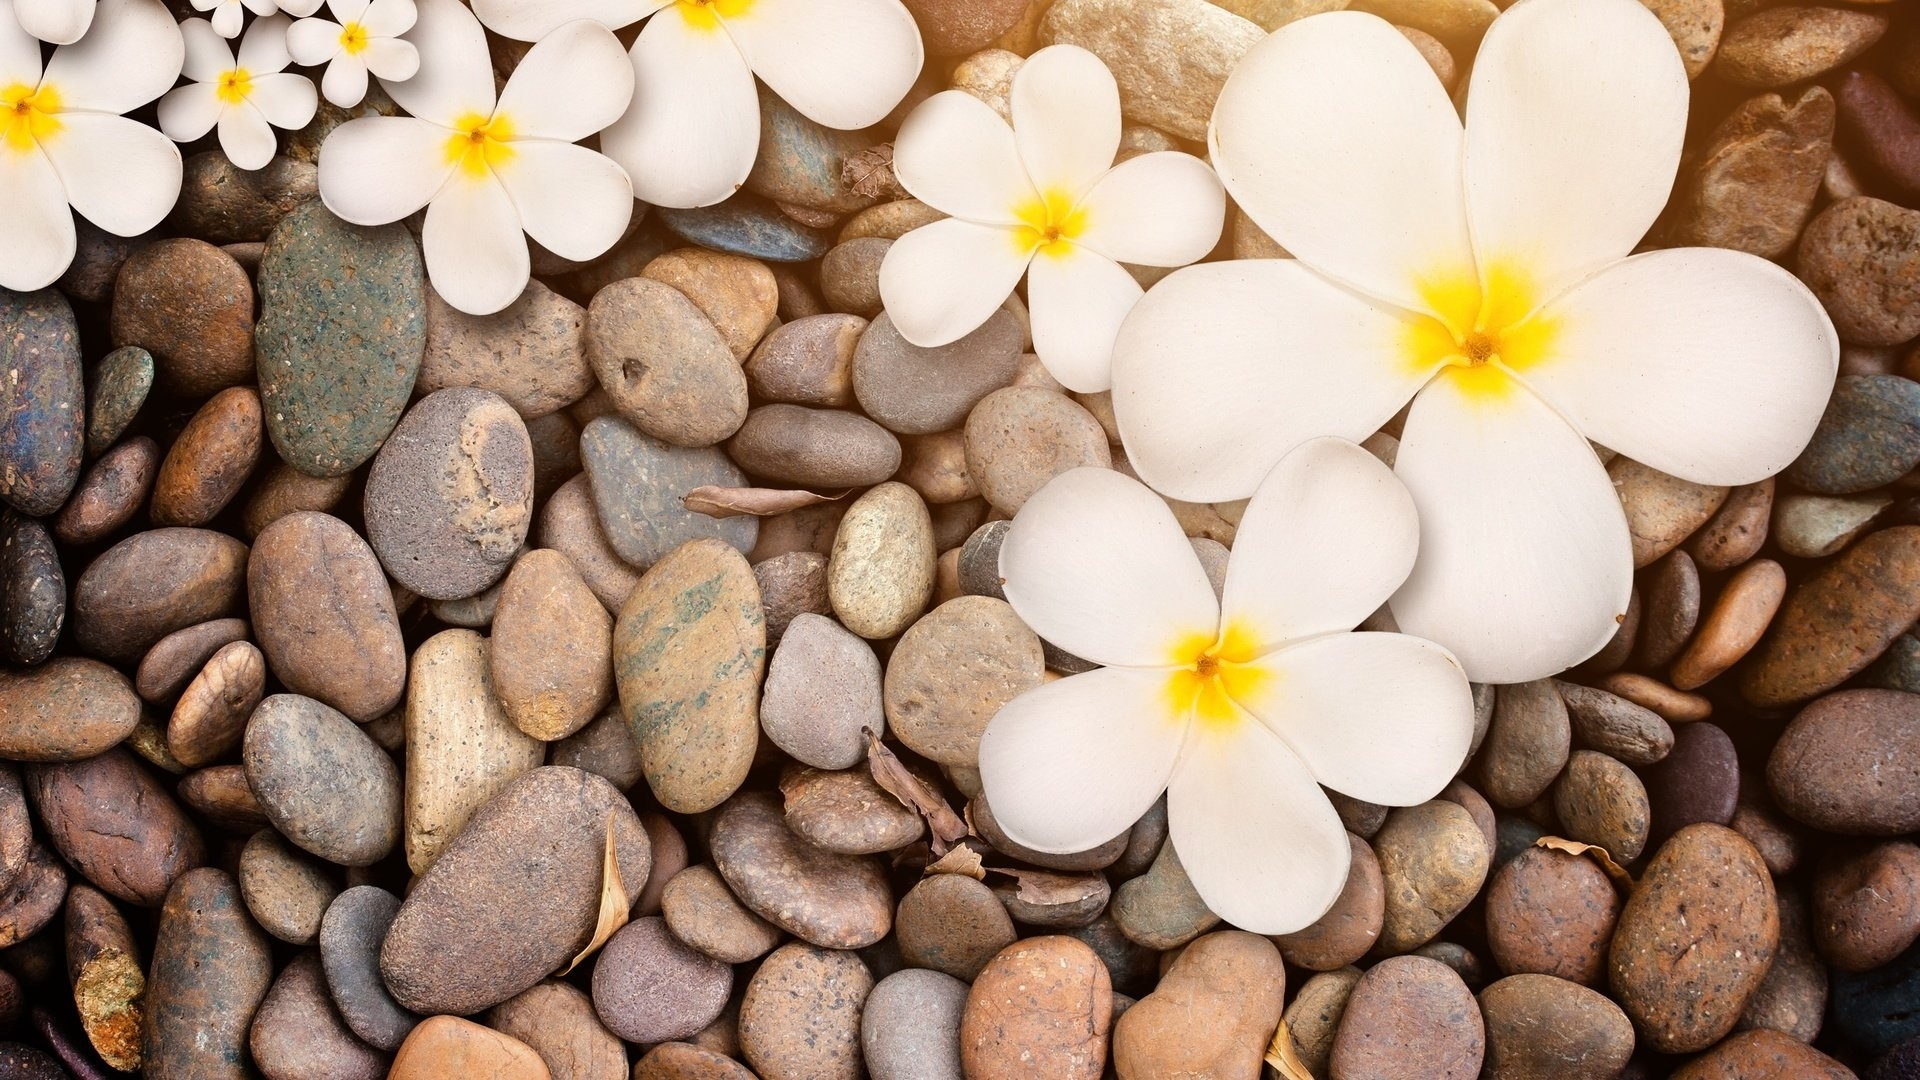 Flower And Stones wallpaper photo hd